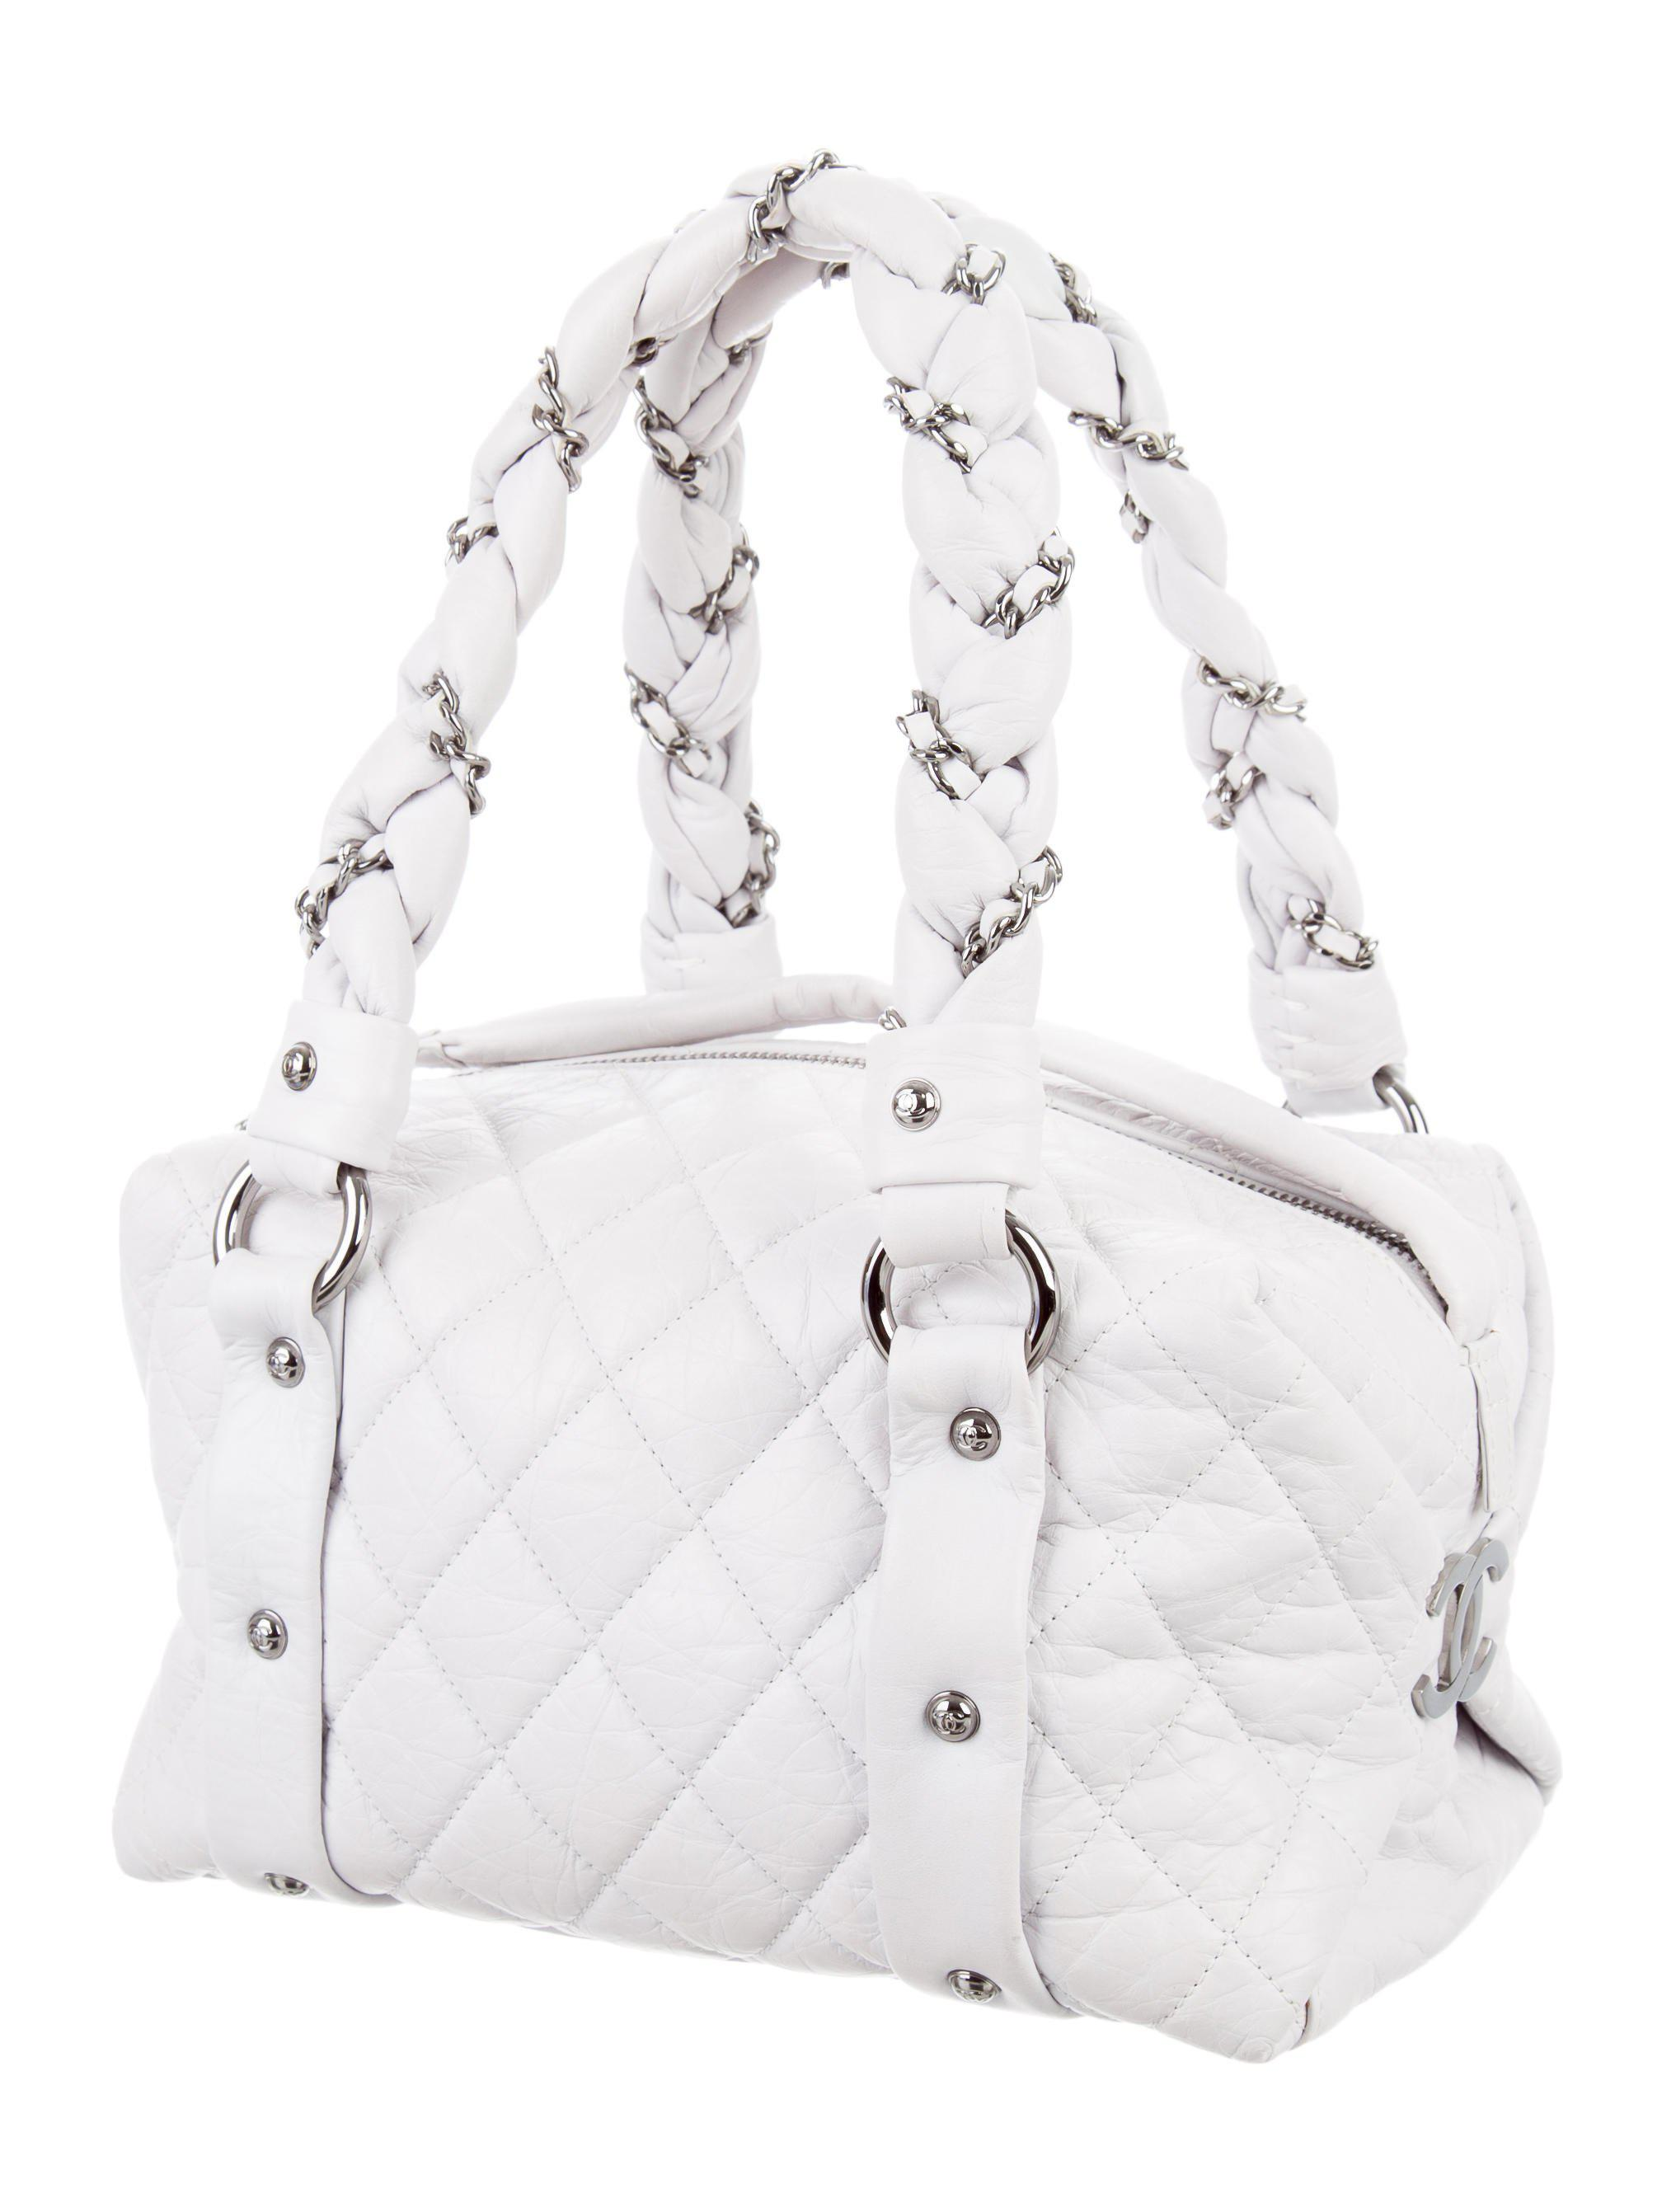 Lyst - Chanel Small Lady Braid Bowler Bag White in Metallic f24c6316968da